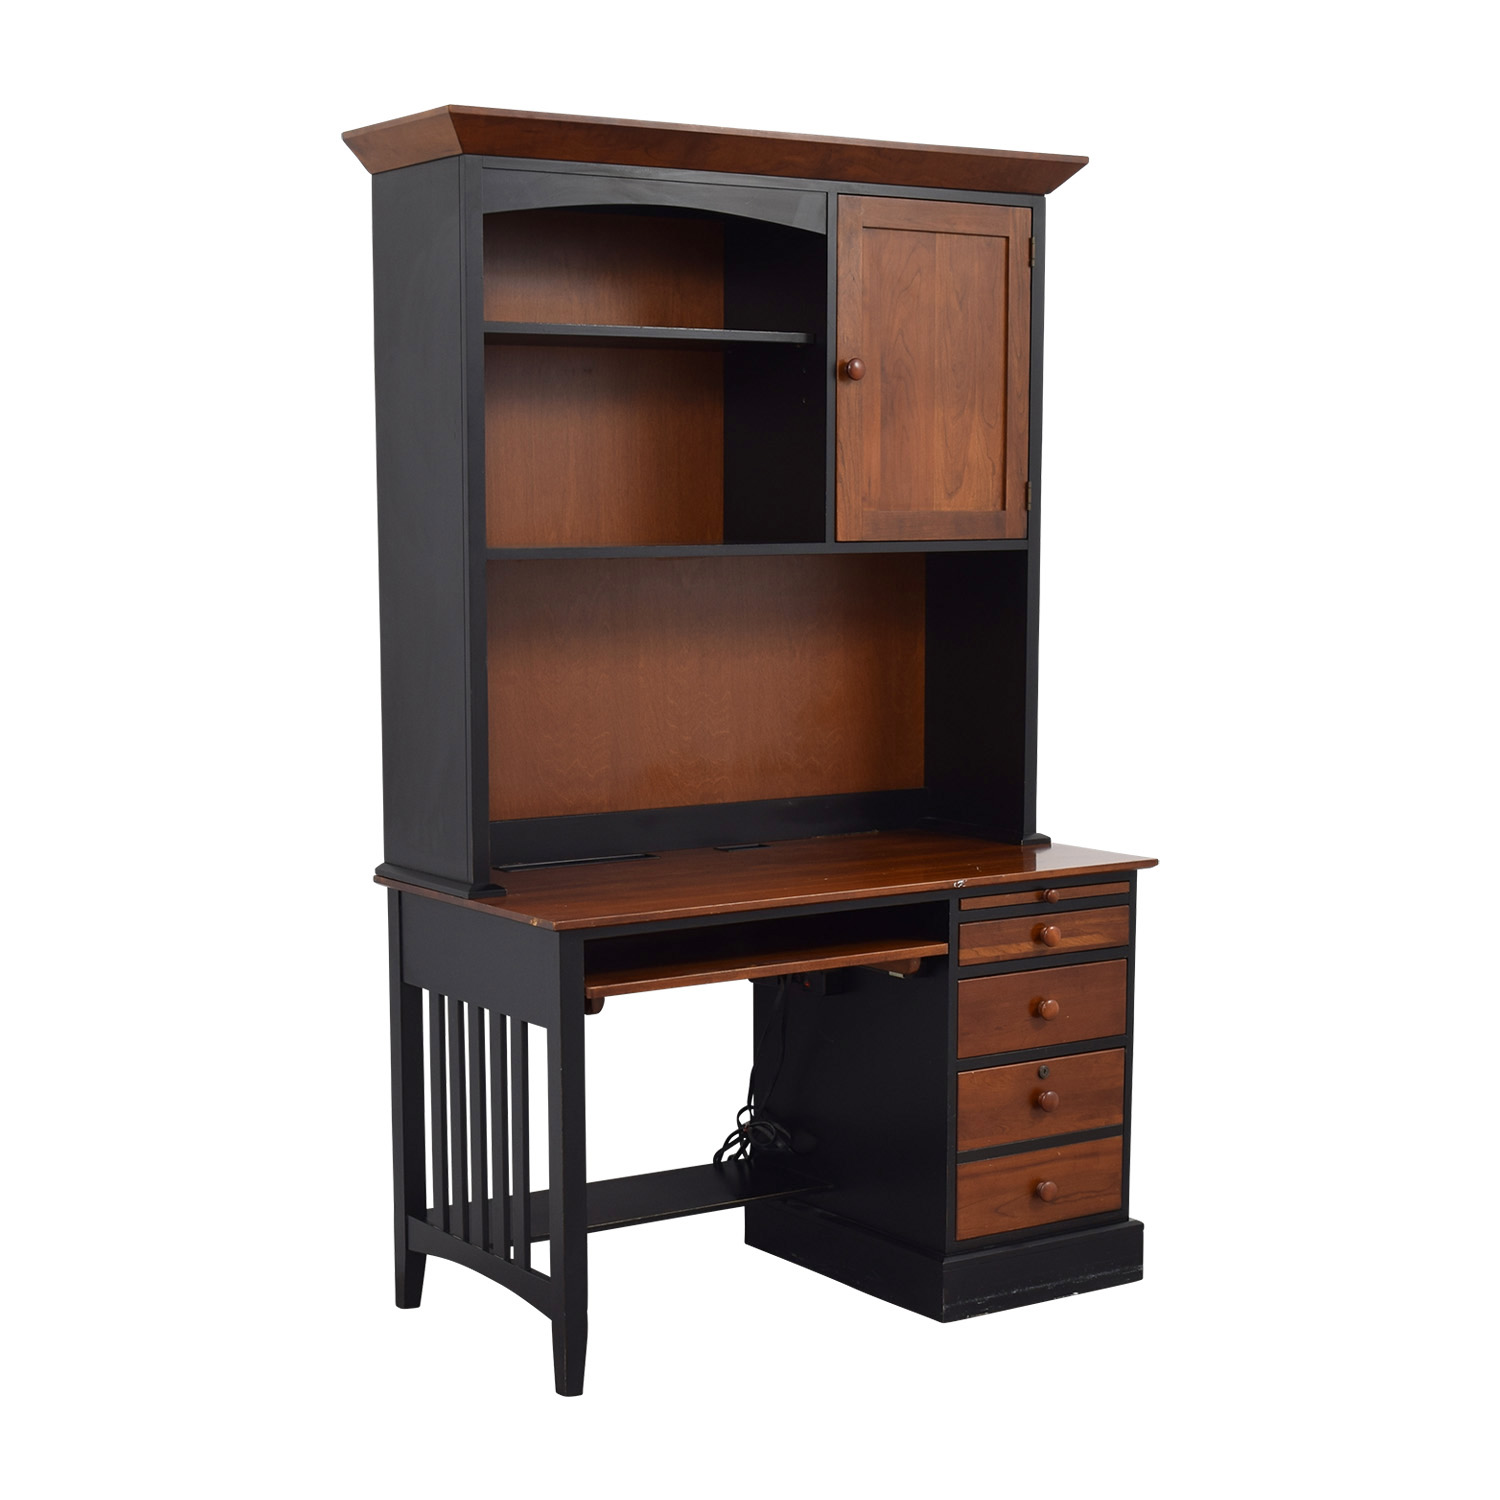 Ethan Allen Ethan Allen Cherry Wood & Black Desk with Hutch dimensions